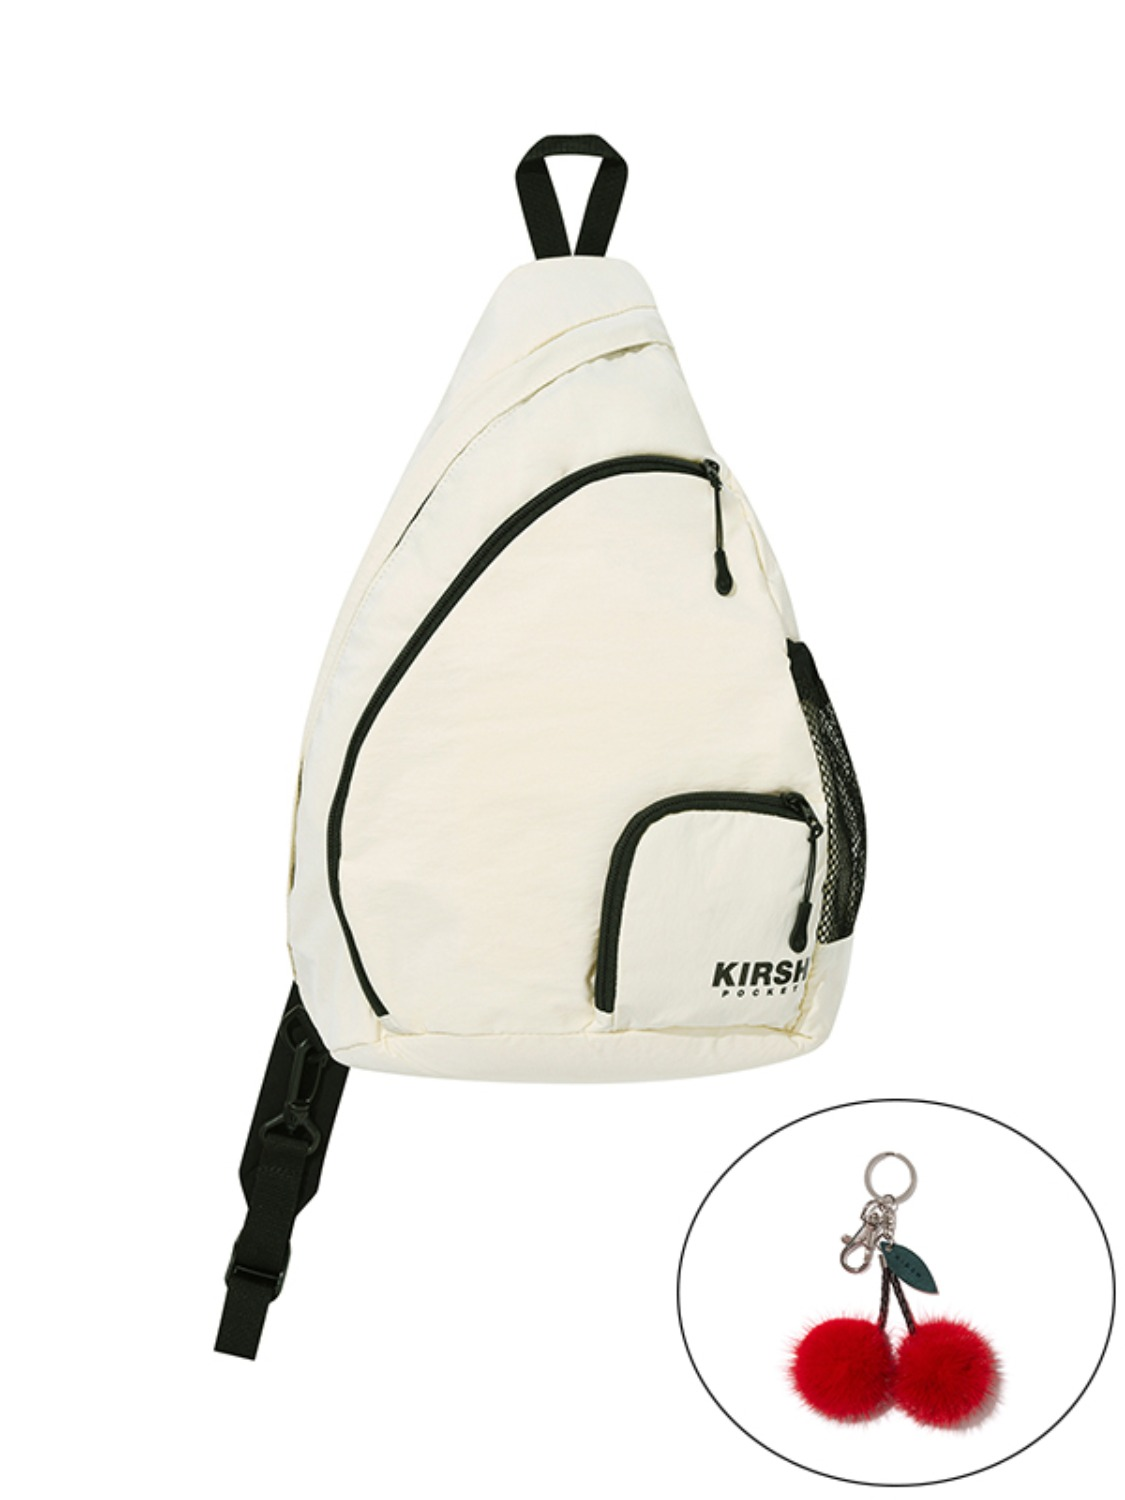 (10월 6일 예약발송)KIRSH POCKET MULTI POCKET SLING BAG JA [CREAM]